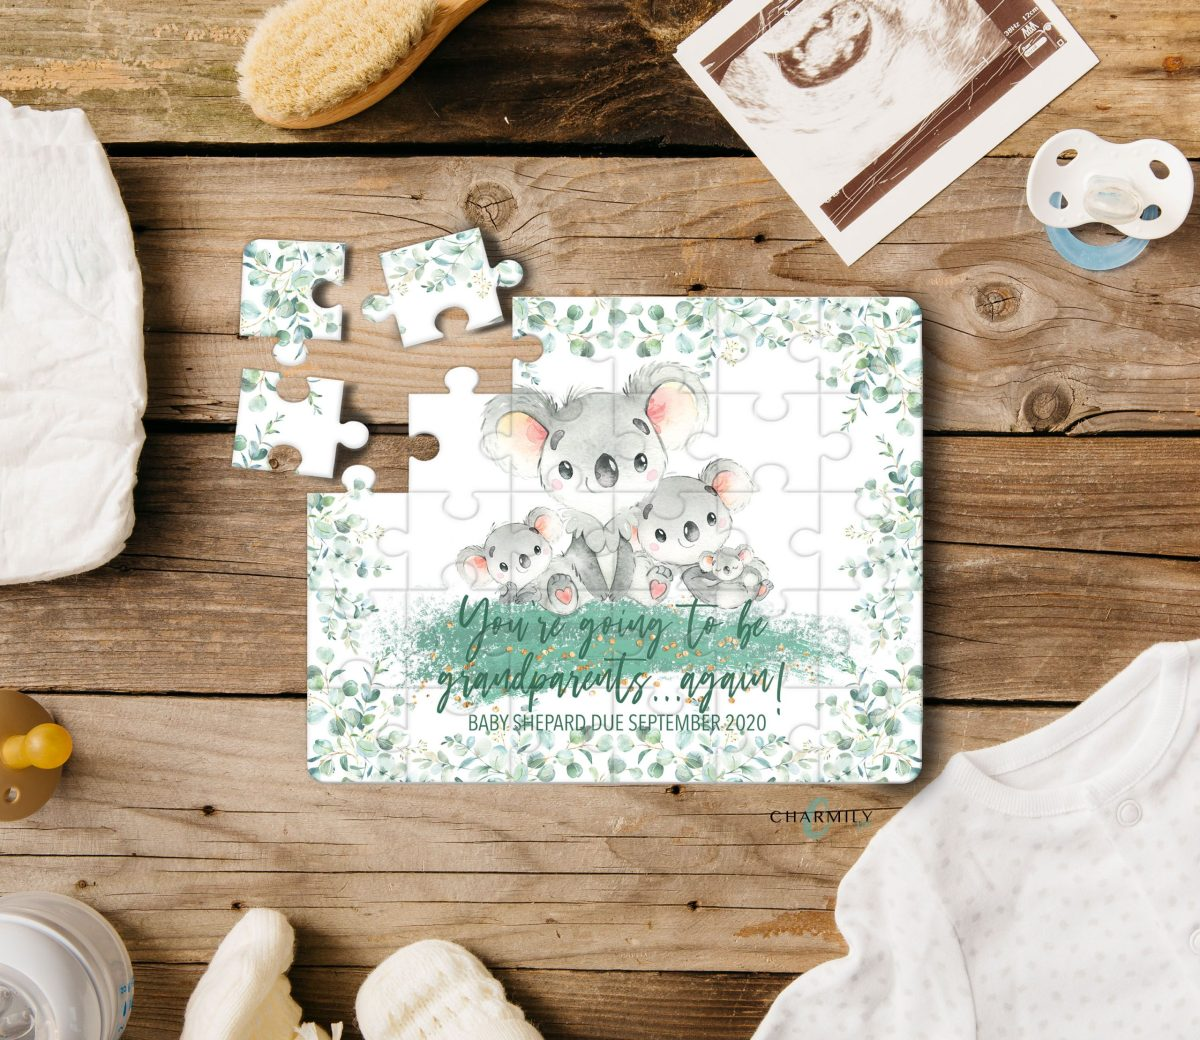 Koala-Fam4-grandparents-again-Baby-Announcement-Puzzle-Mockup-Recovered